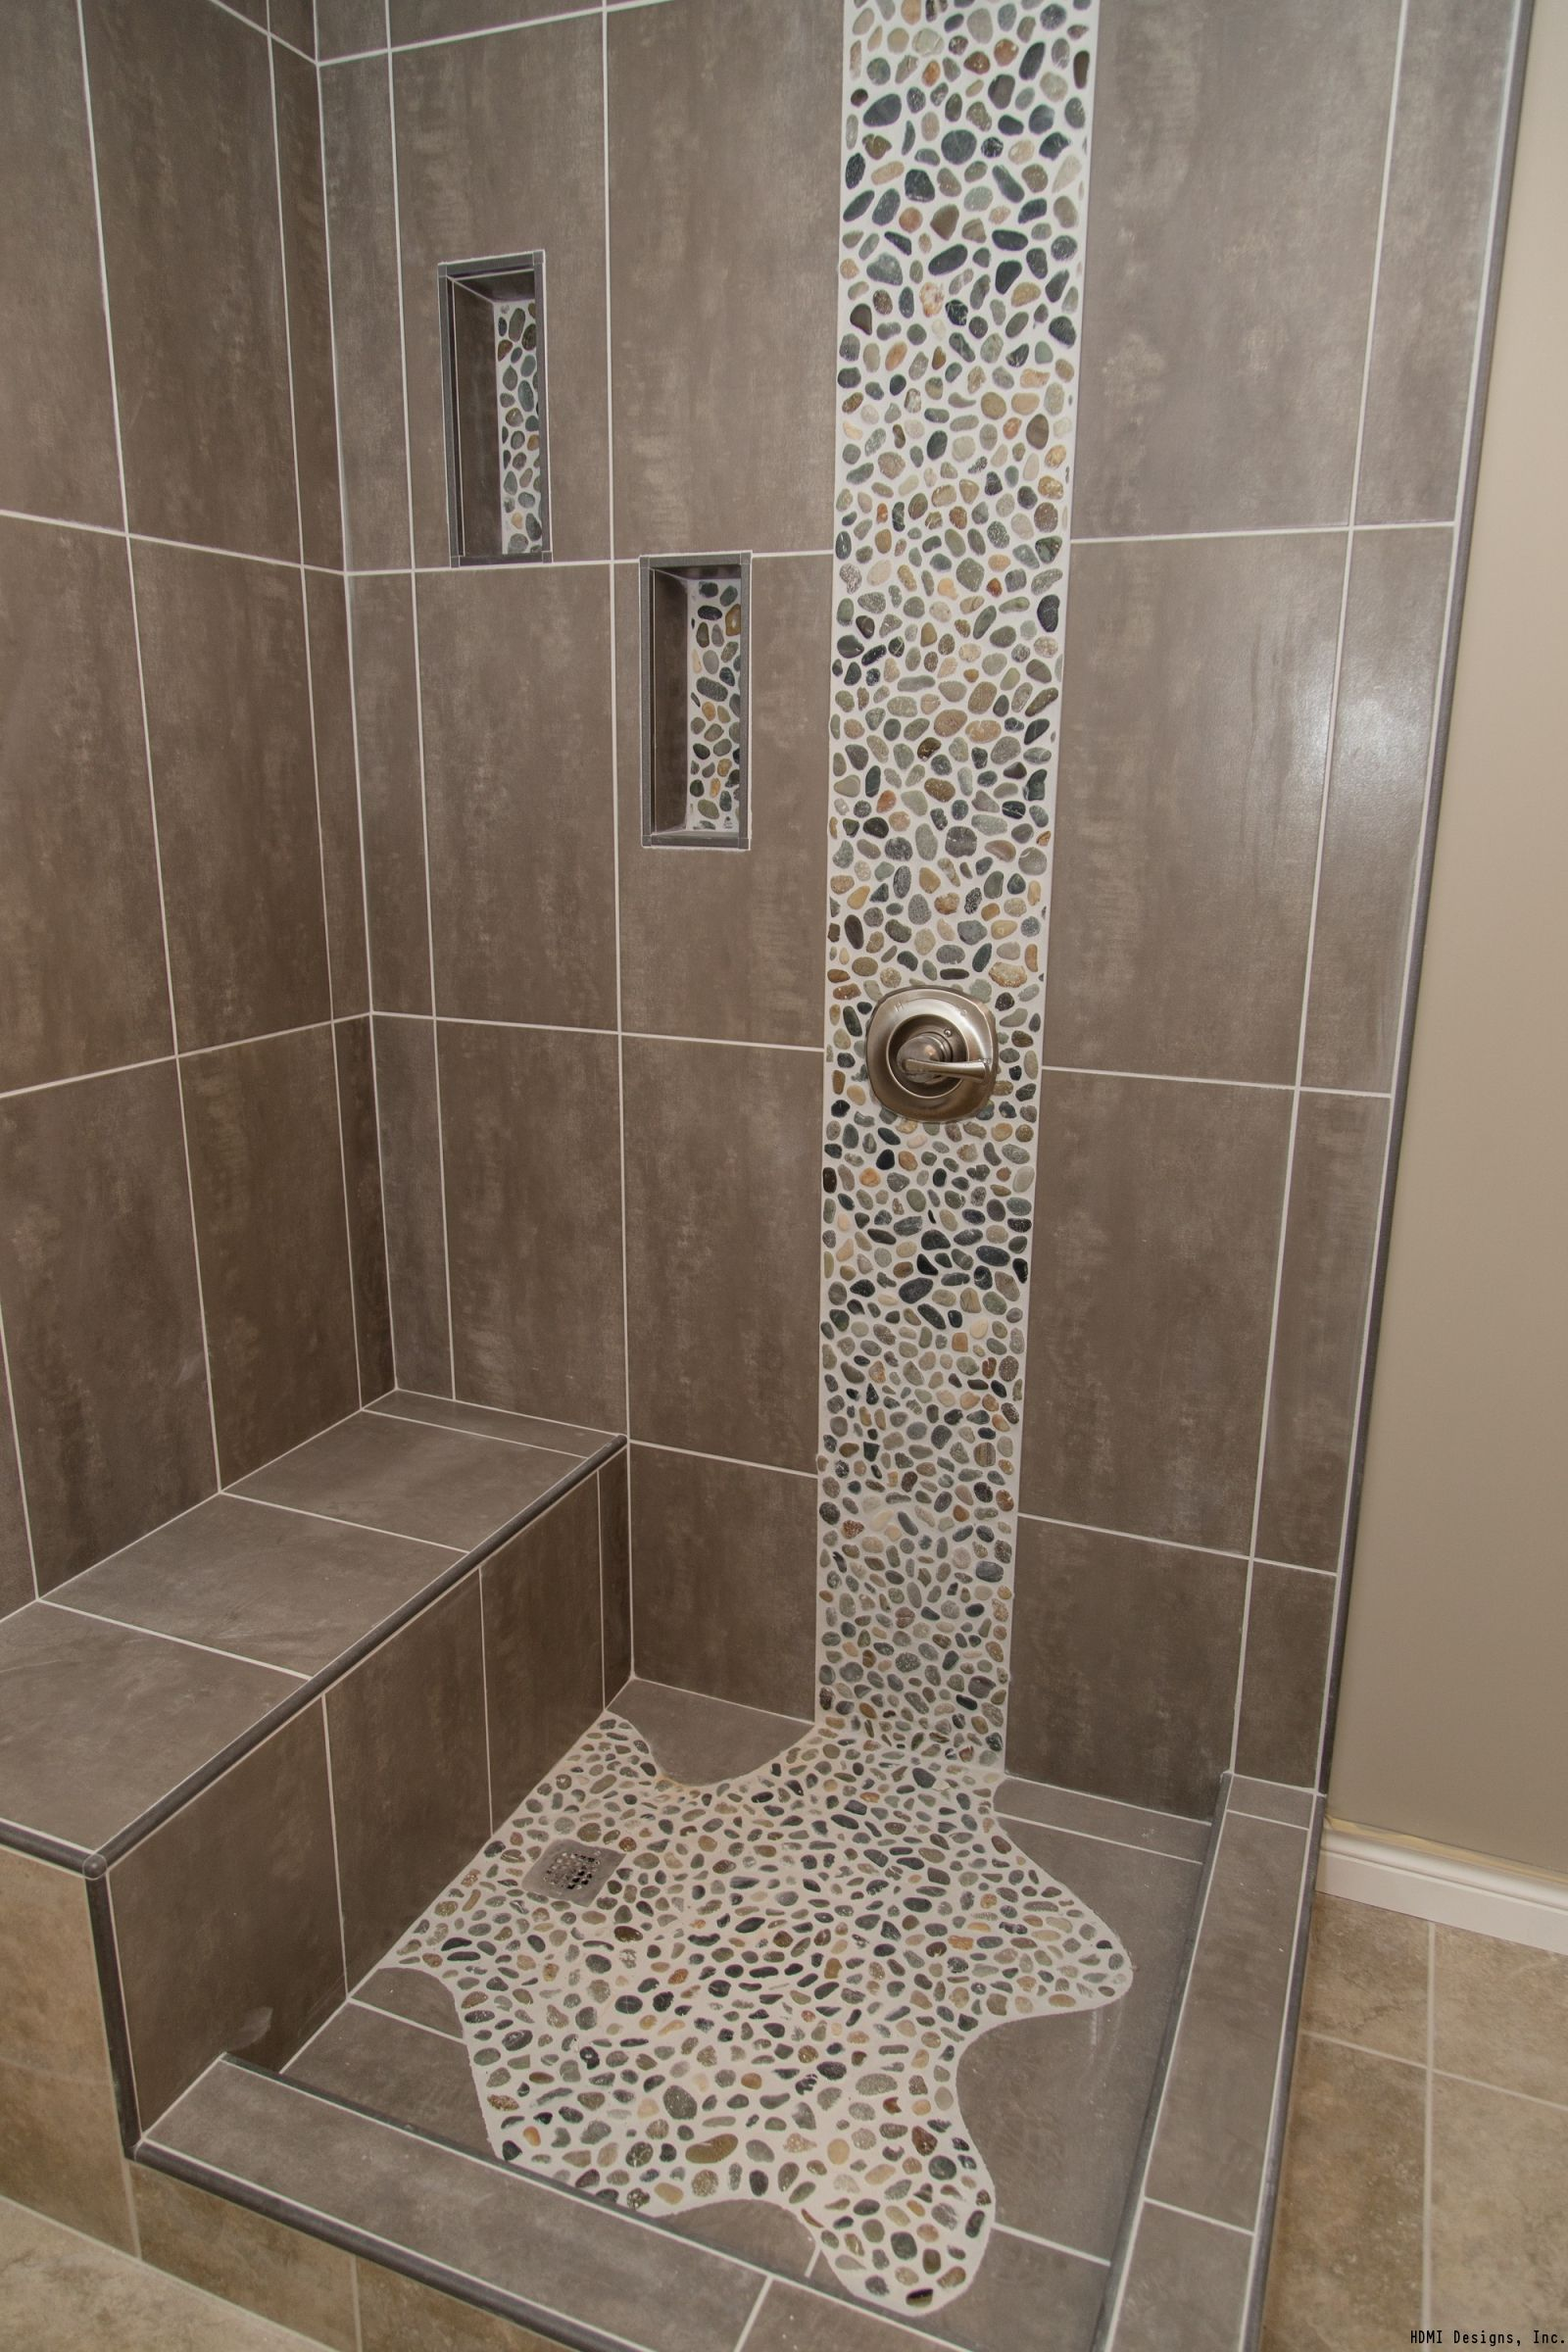 Spruce Up Your Shower By Adding Pebble Tile Accents Click The Pin To Get Started On Your Next